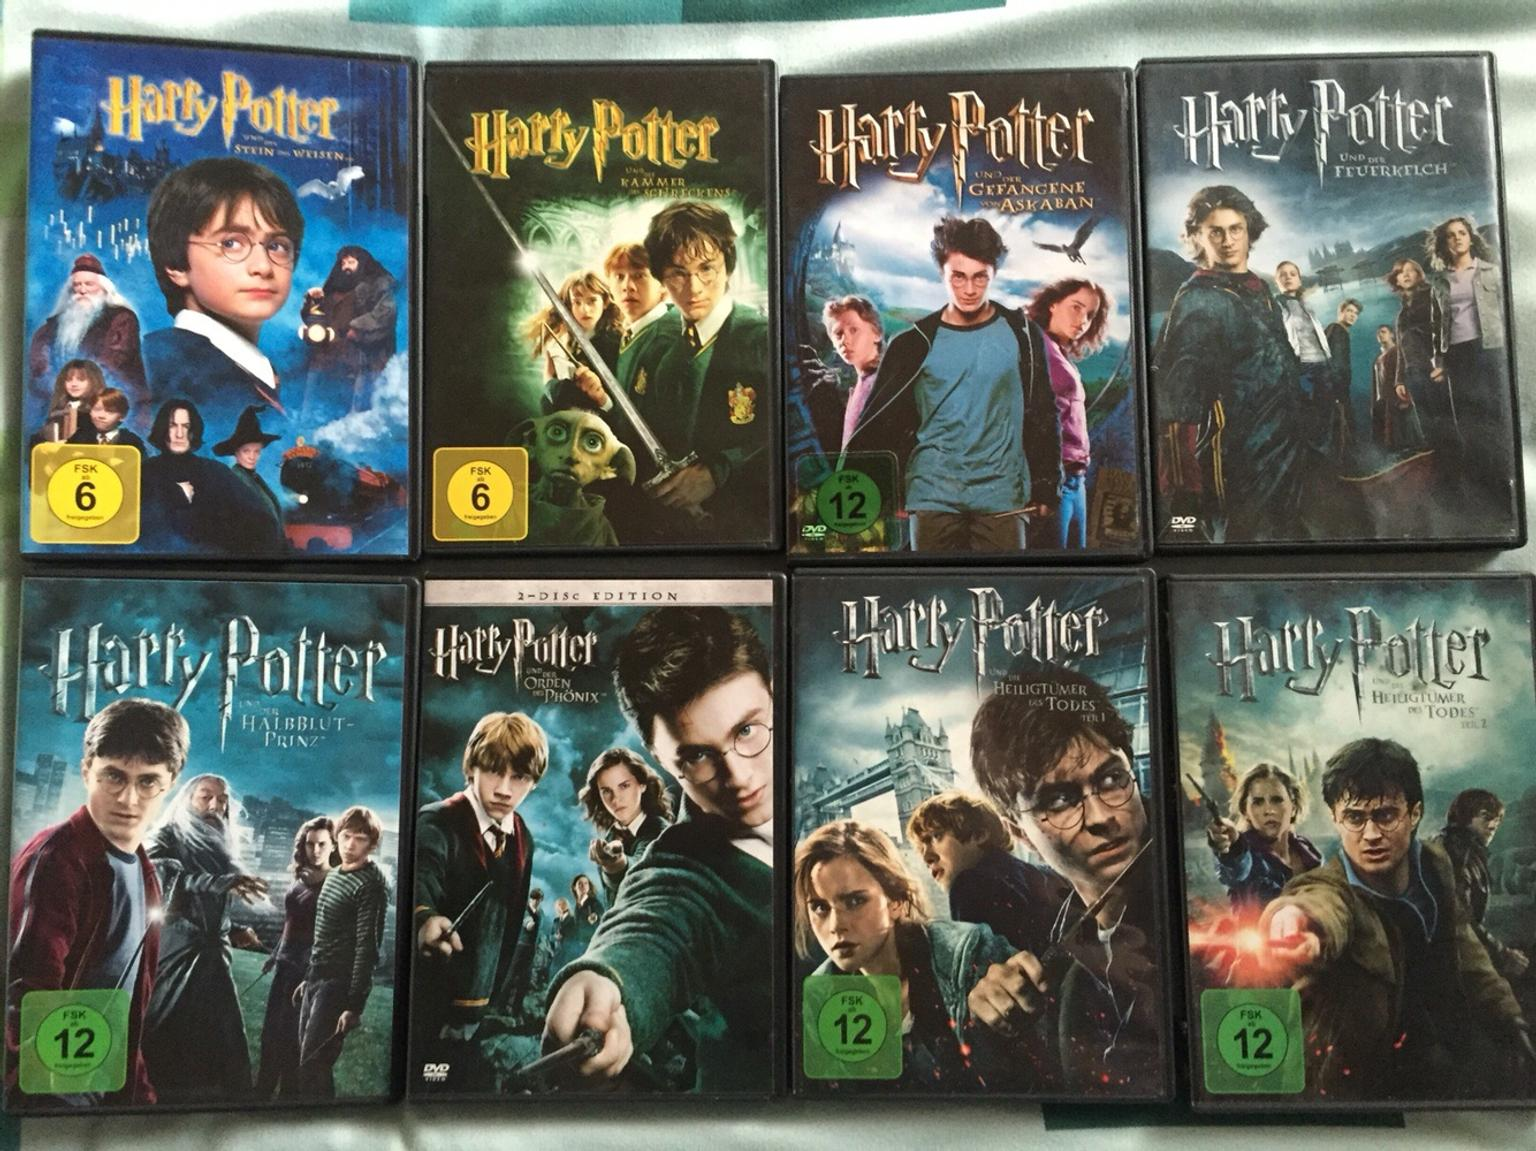 Harry Potter Teil 5 Ganzer Film Deutsch